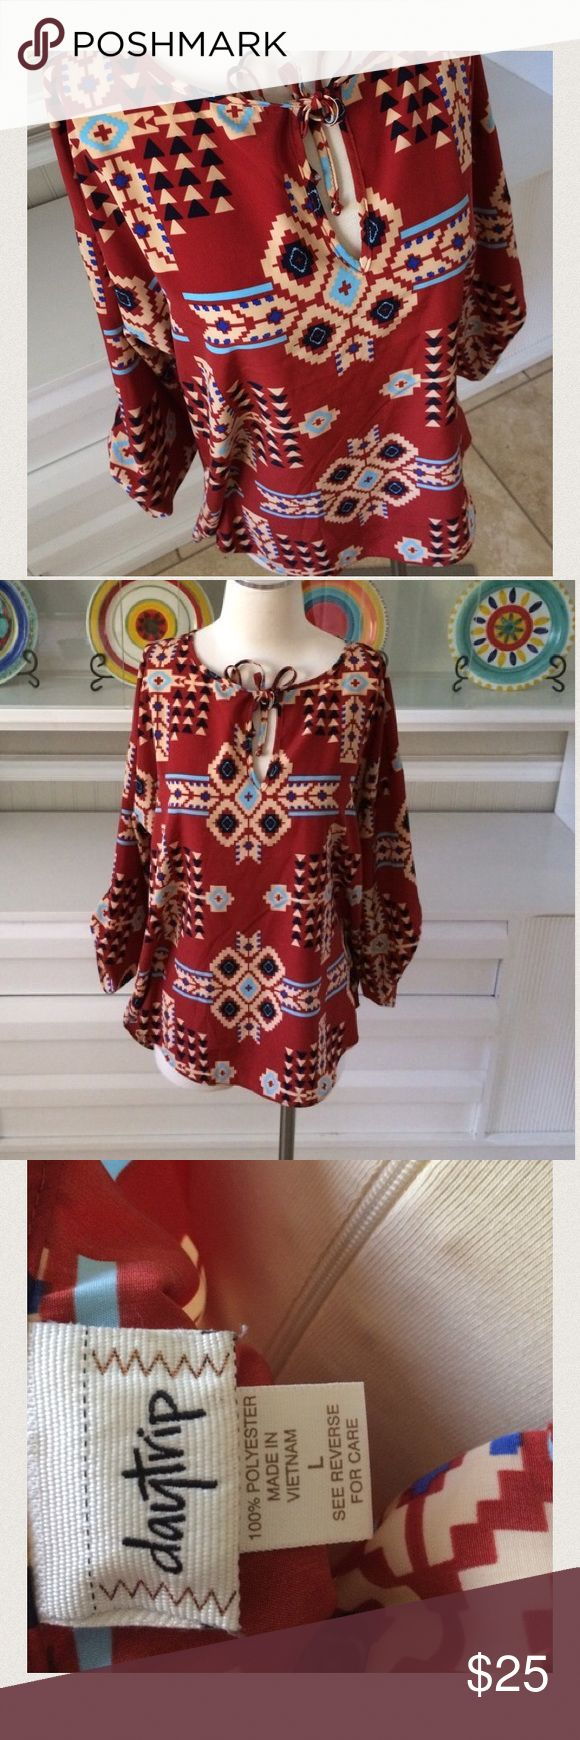 "Aztec blouse NWOT Excellent condition!  Measures 30"" long and 22"" armpit to armpit Daytrip Tops Blouses"